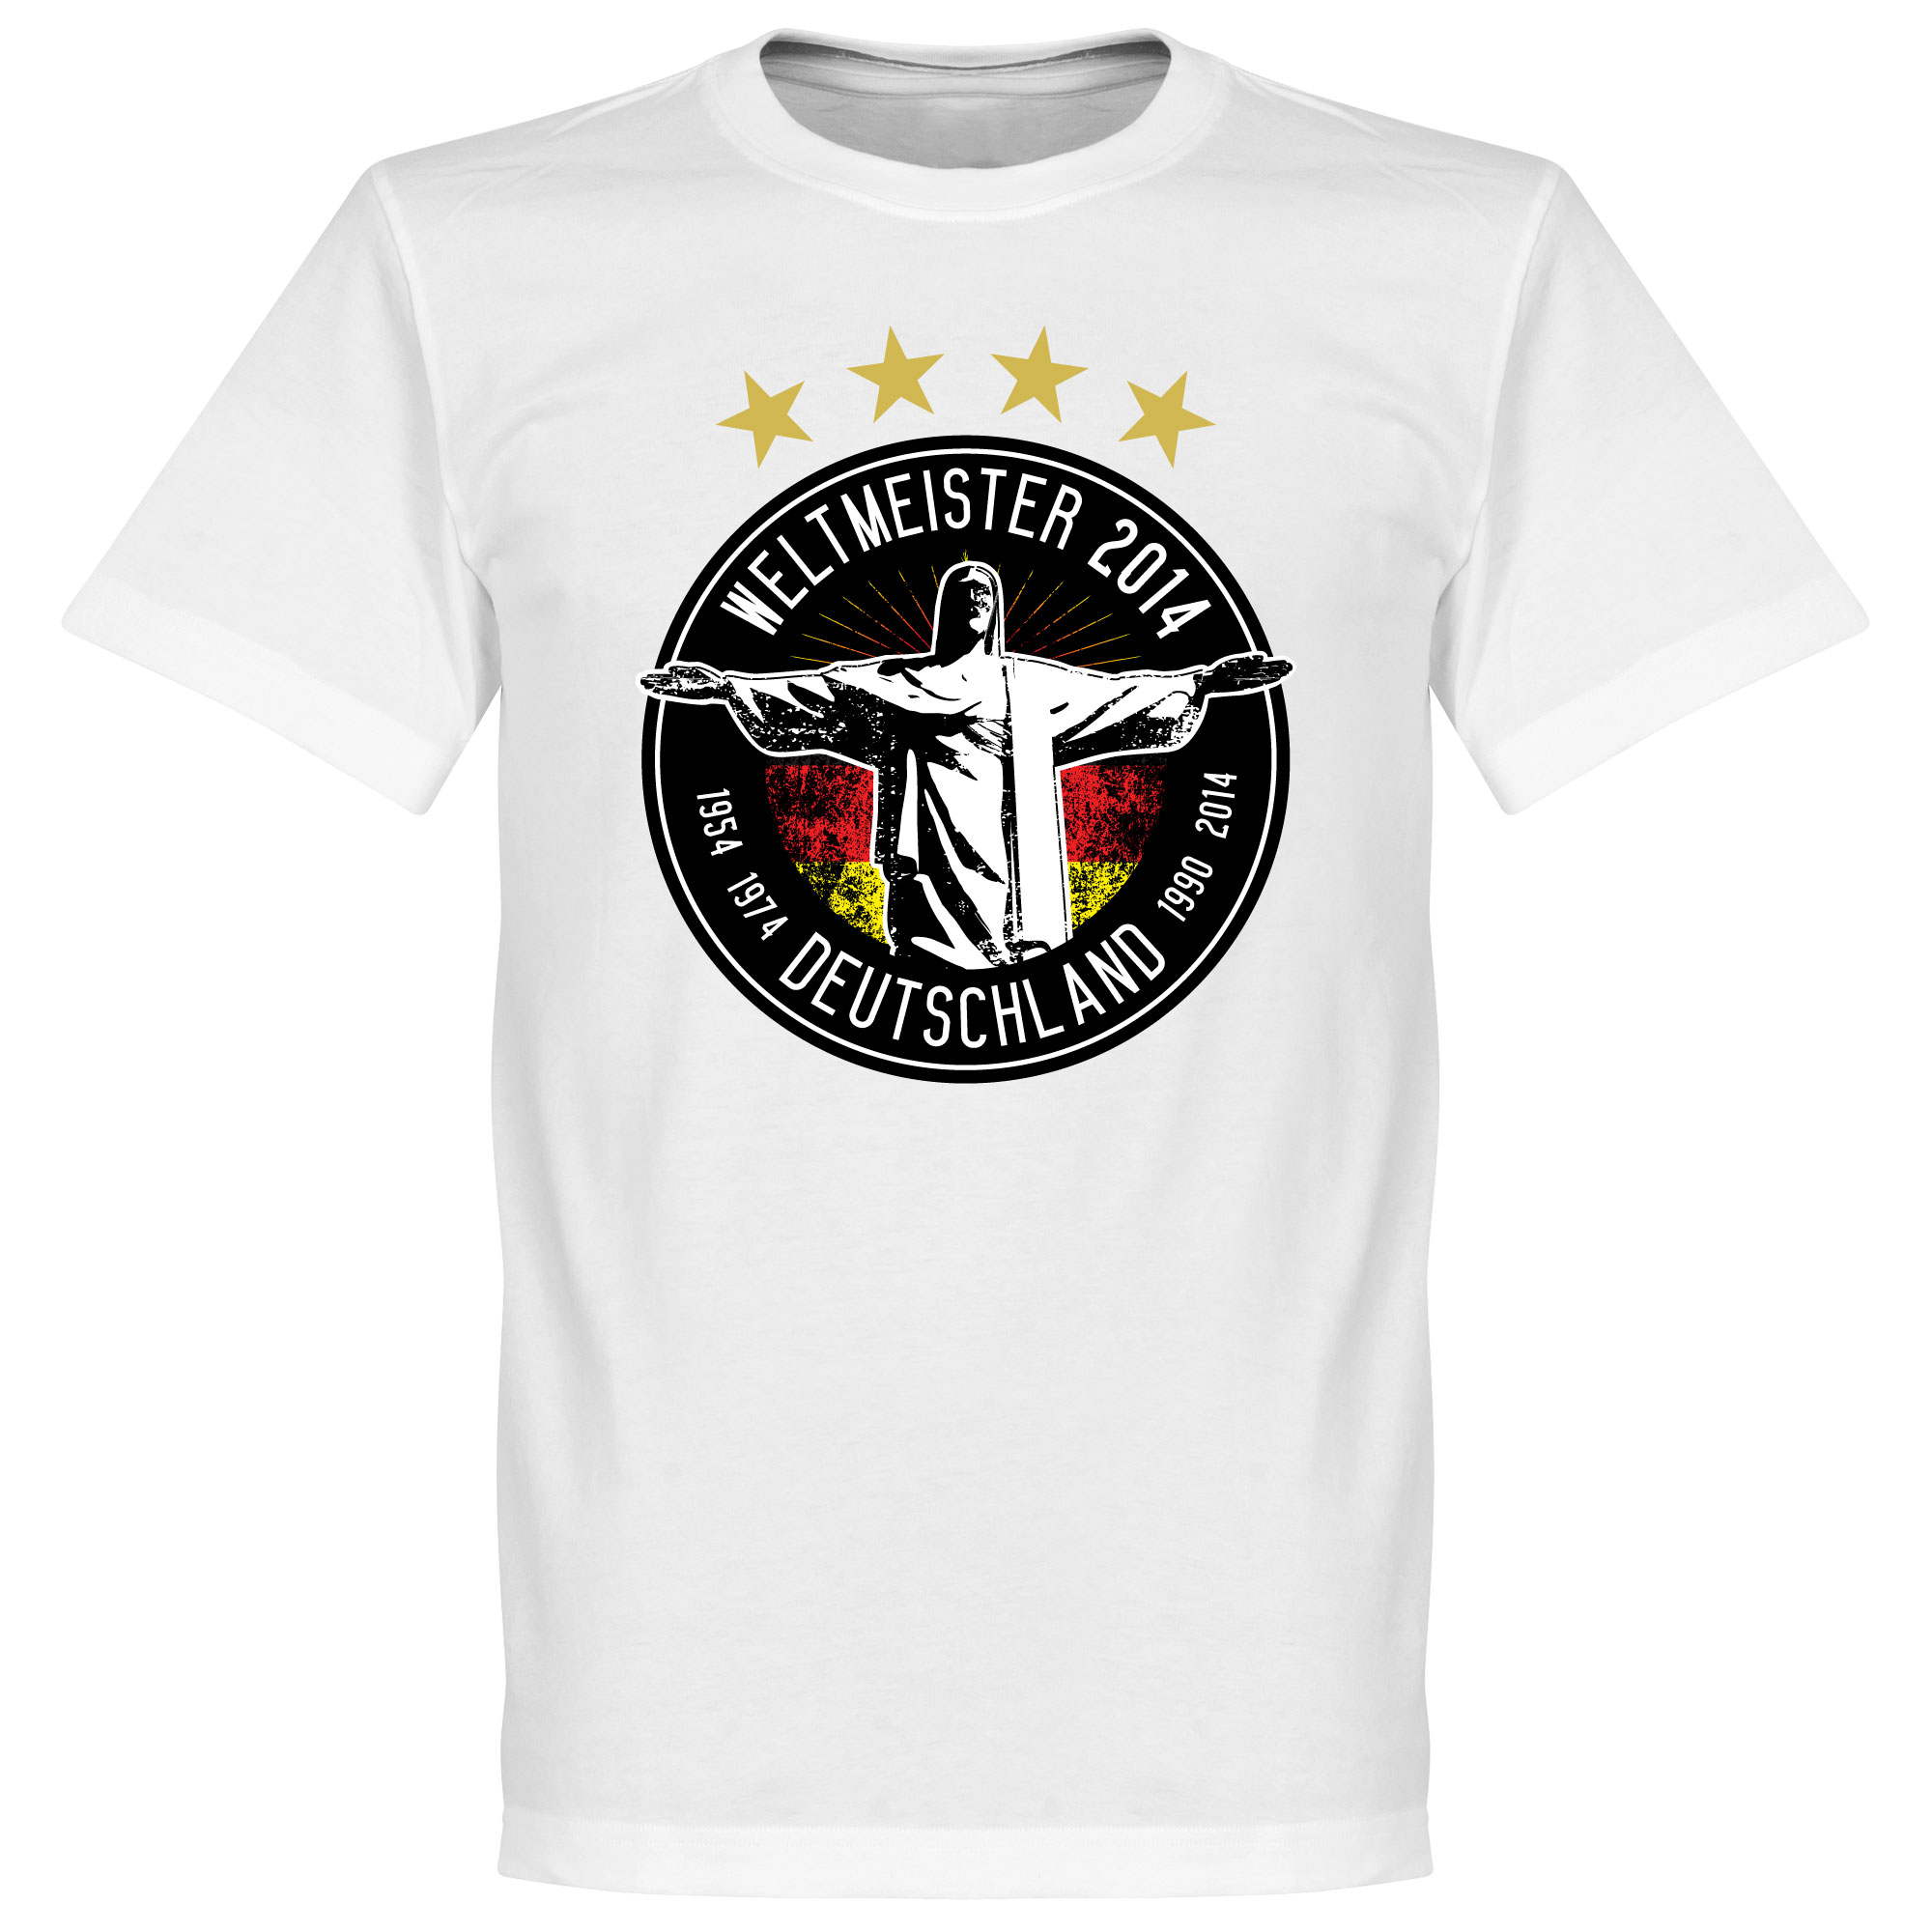 Germany 2014 World Cup Winners Tee - White - M